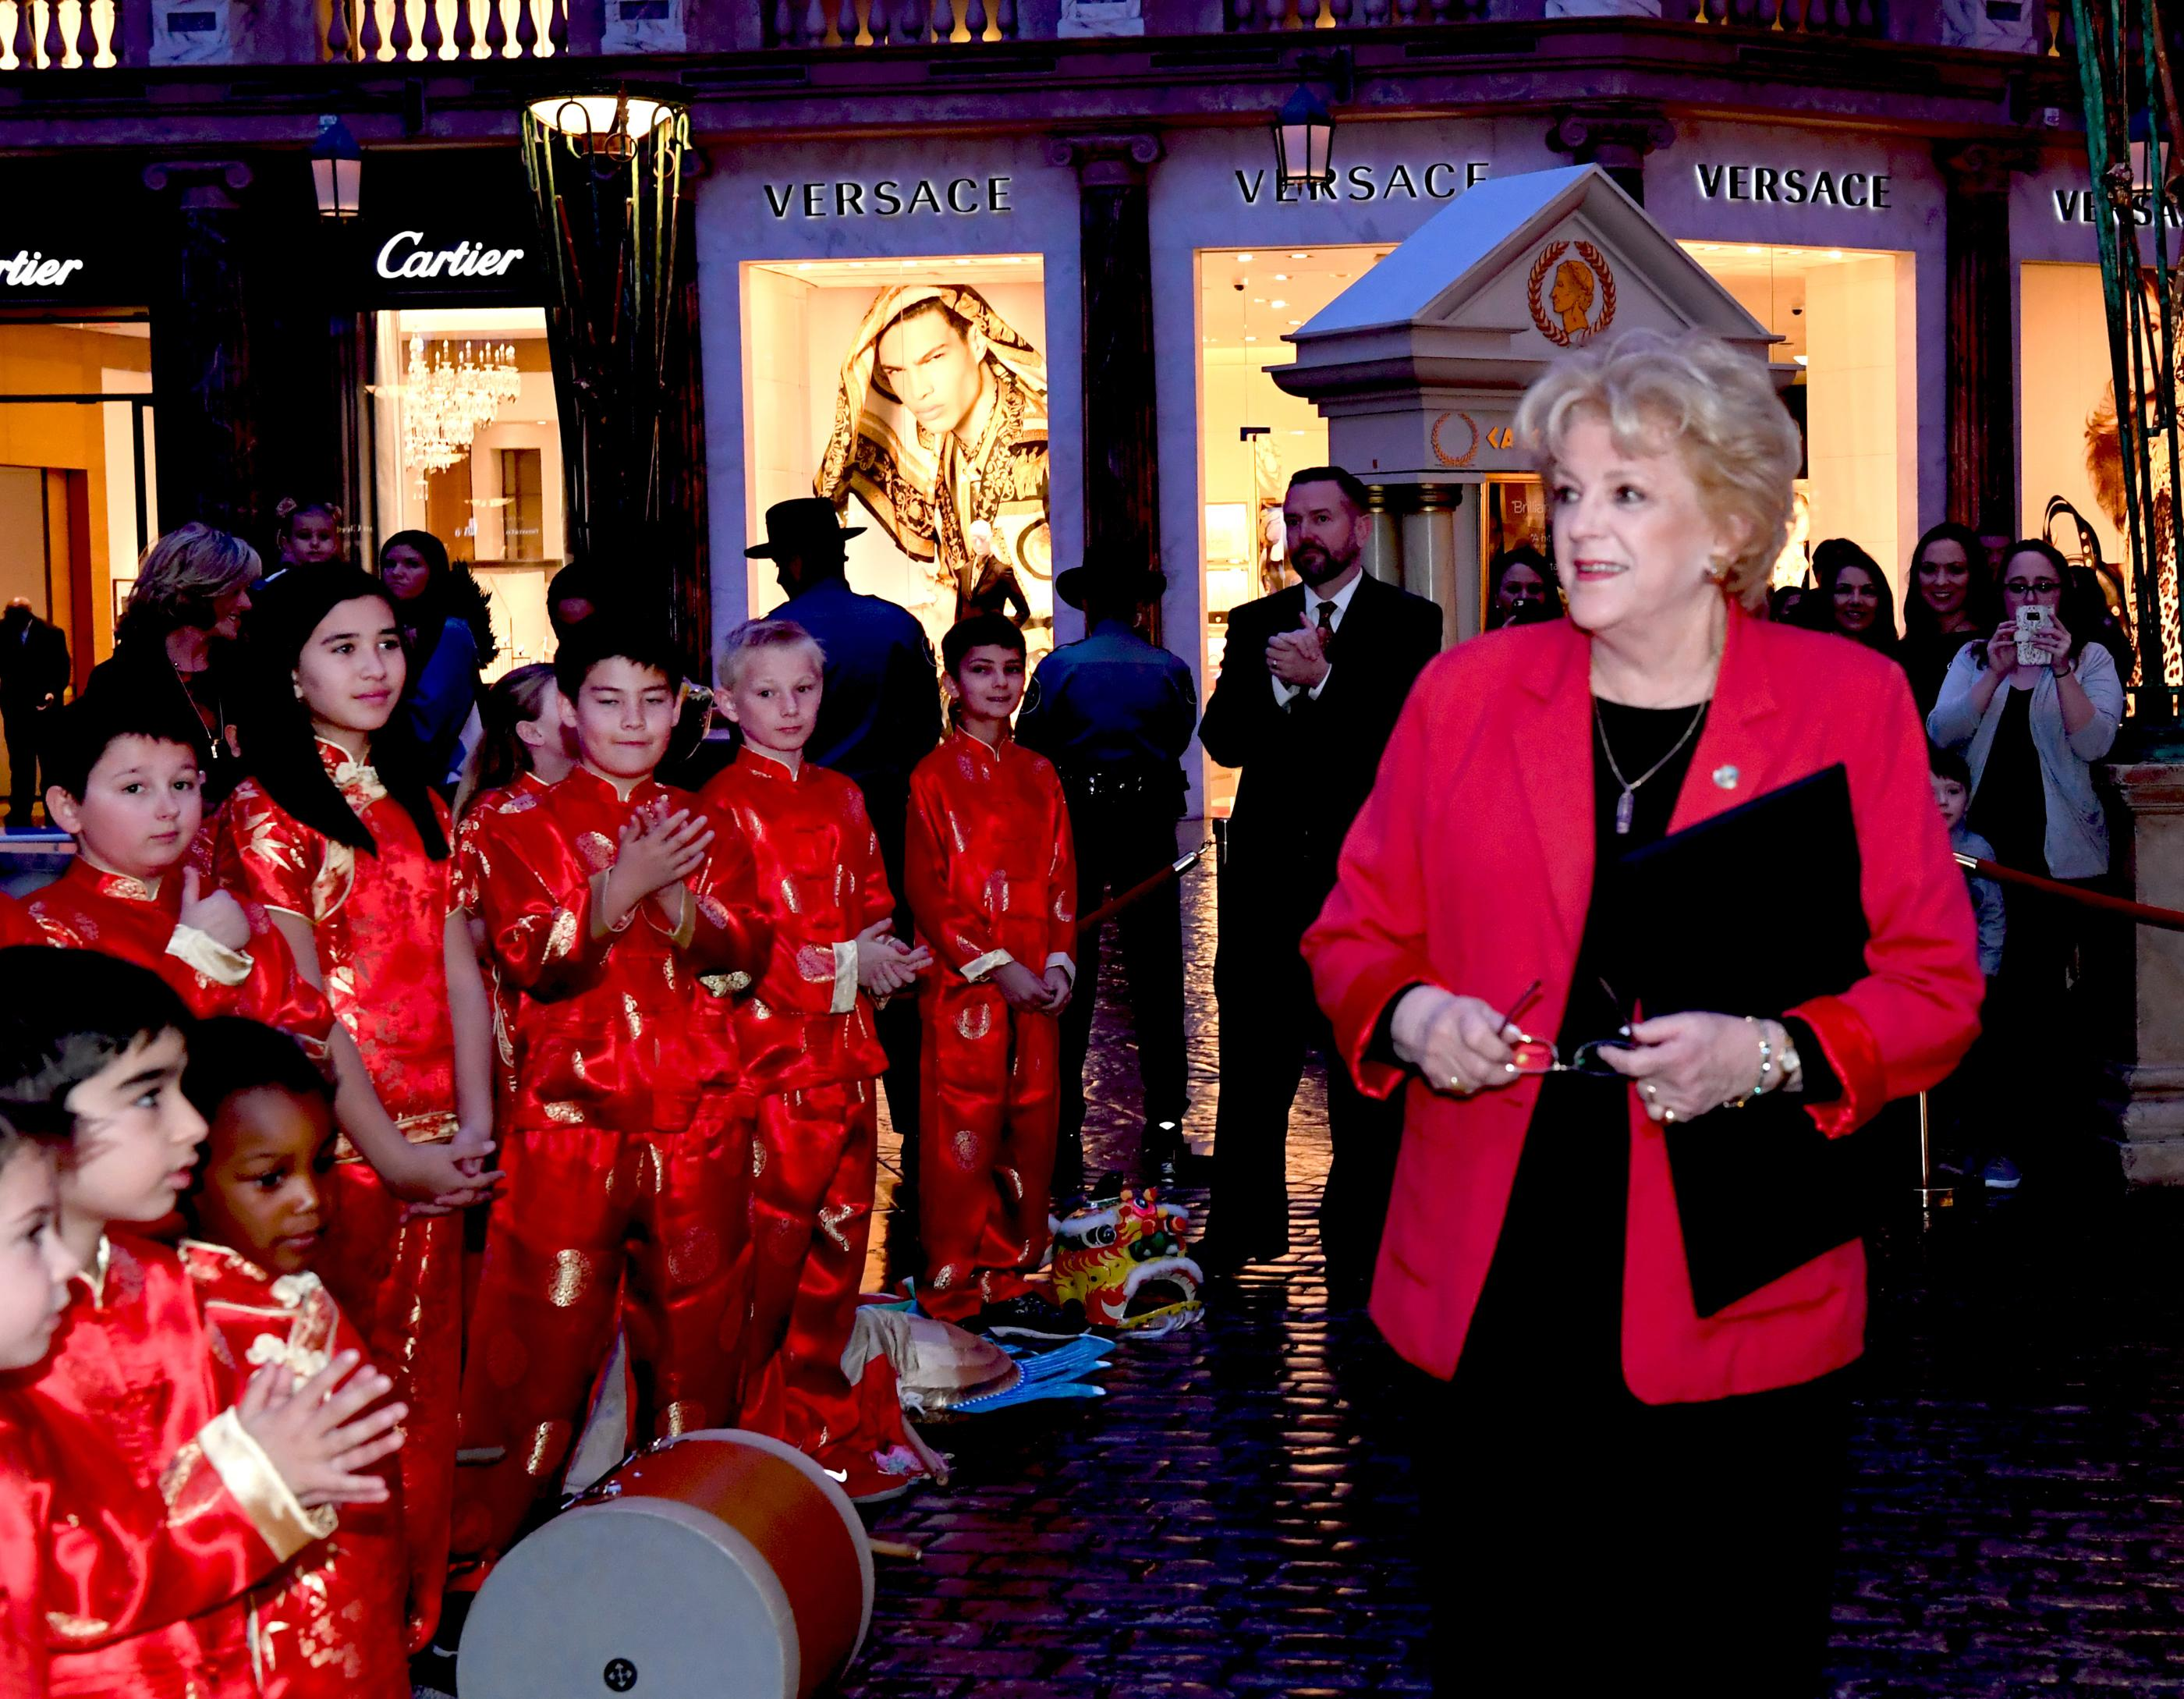 Meadows School 22nd Annual Dragon Parade in honor of Chinese New Year, the Year of the Dog, at Caesars Forum Shops. In this photo Carolyn G. Goodman Mayor of Las Vegas and the founder of the Meadows School reads a proclamation making it Meadows School Day. Thursday, February 16, 2018. CREDIT: Glenn Pinkerton/Las Vegas News Bureau